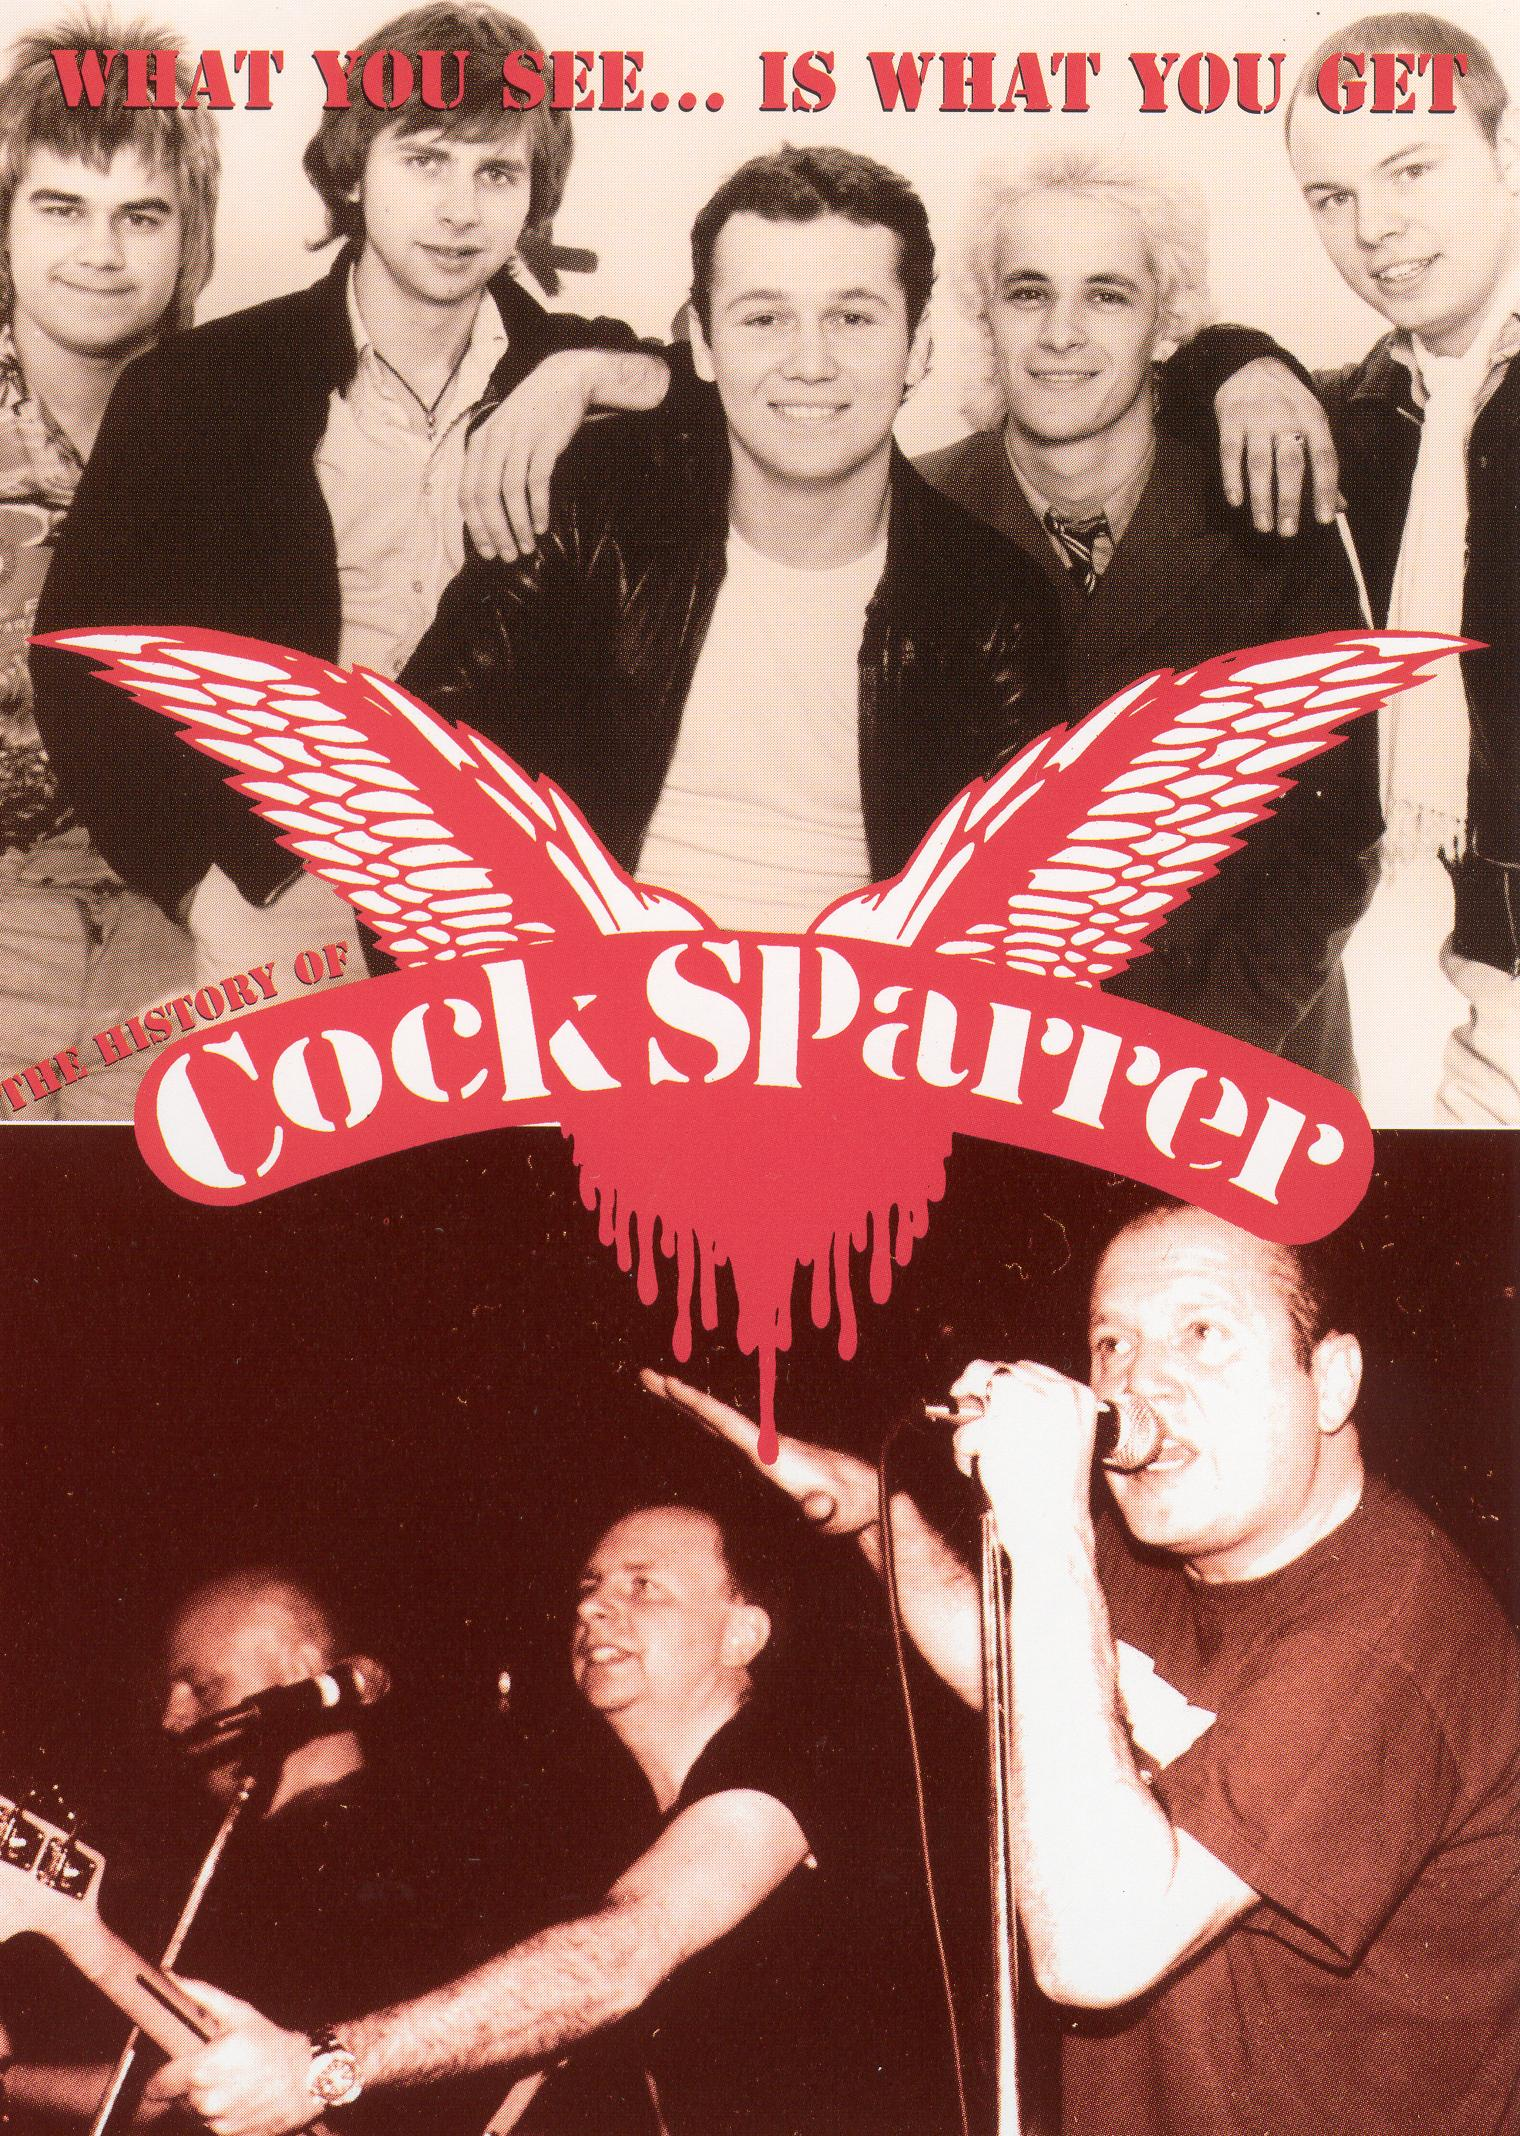 Cock Sparrer: What You See Is What You Get